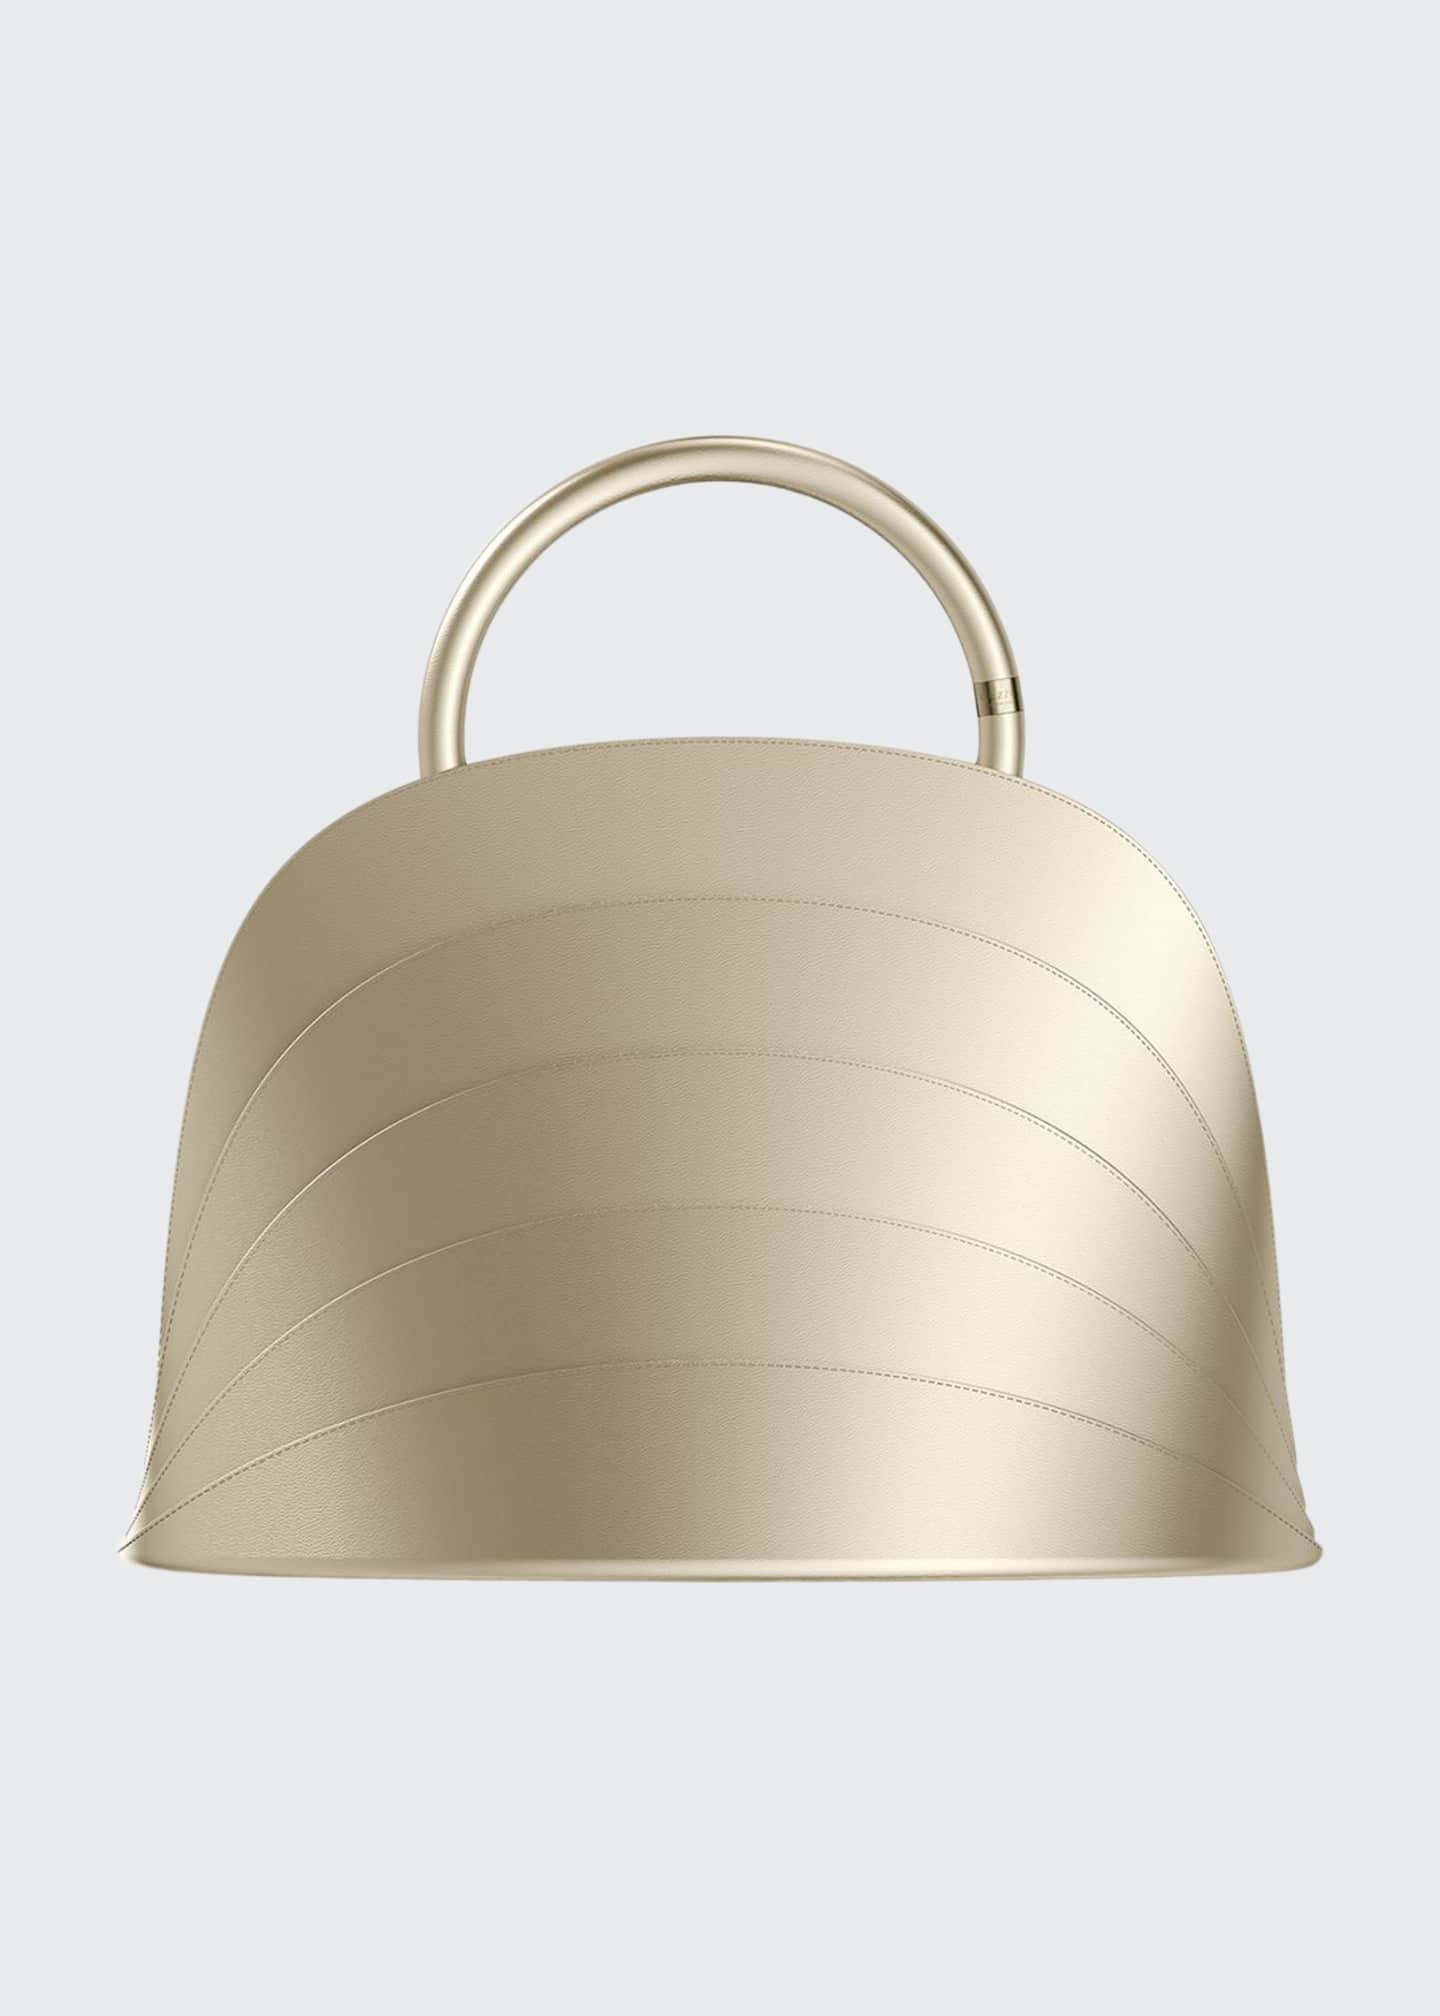 Image 1 of 3: Millefoglie J Layered Top Handle Bag, Gold